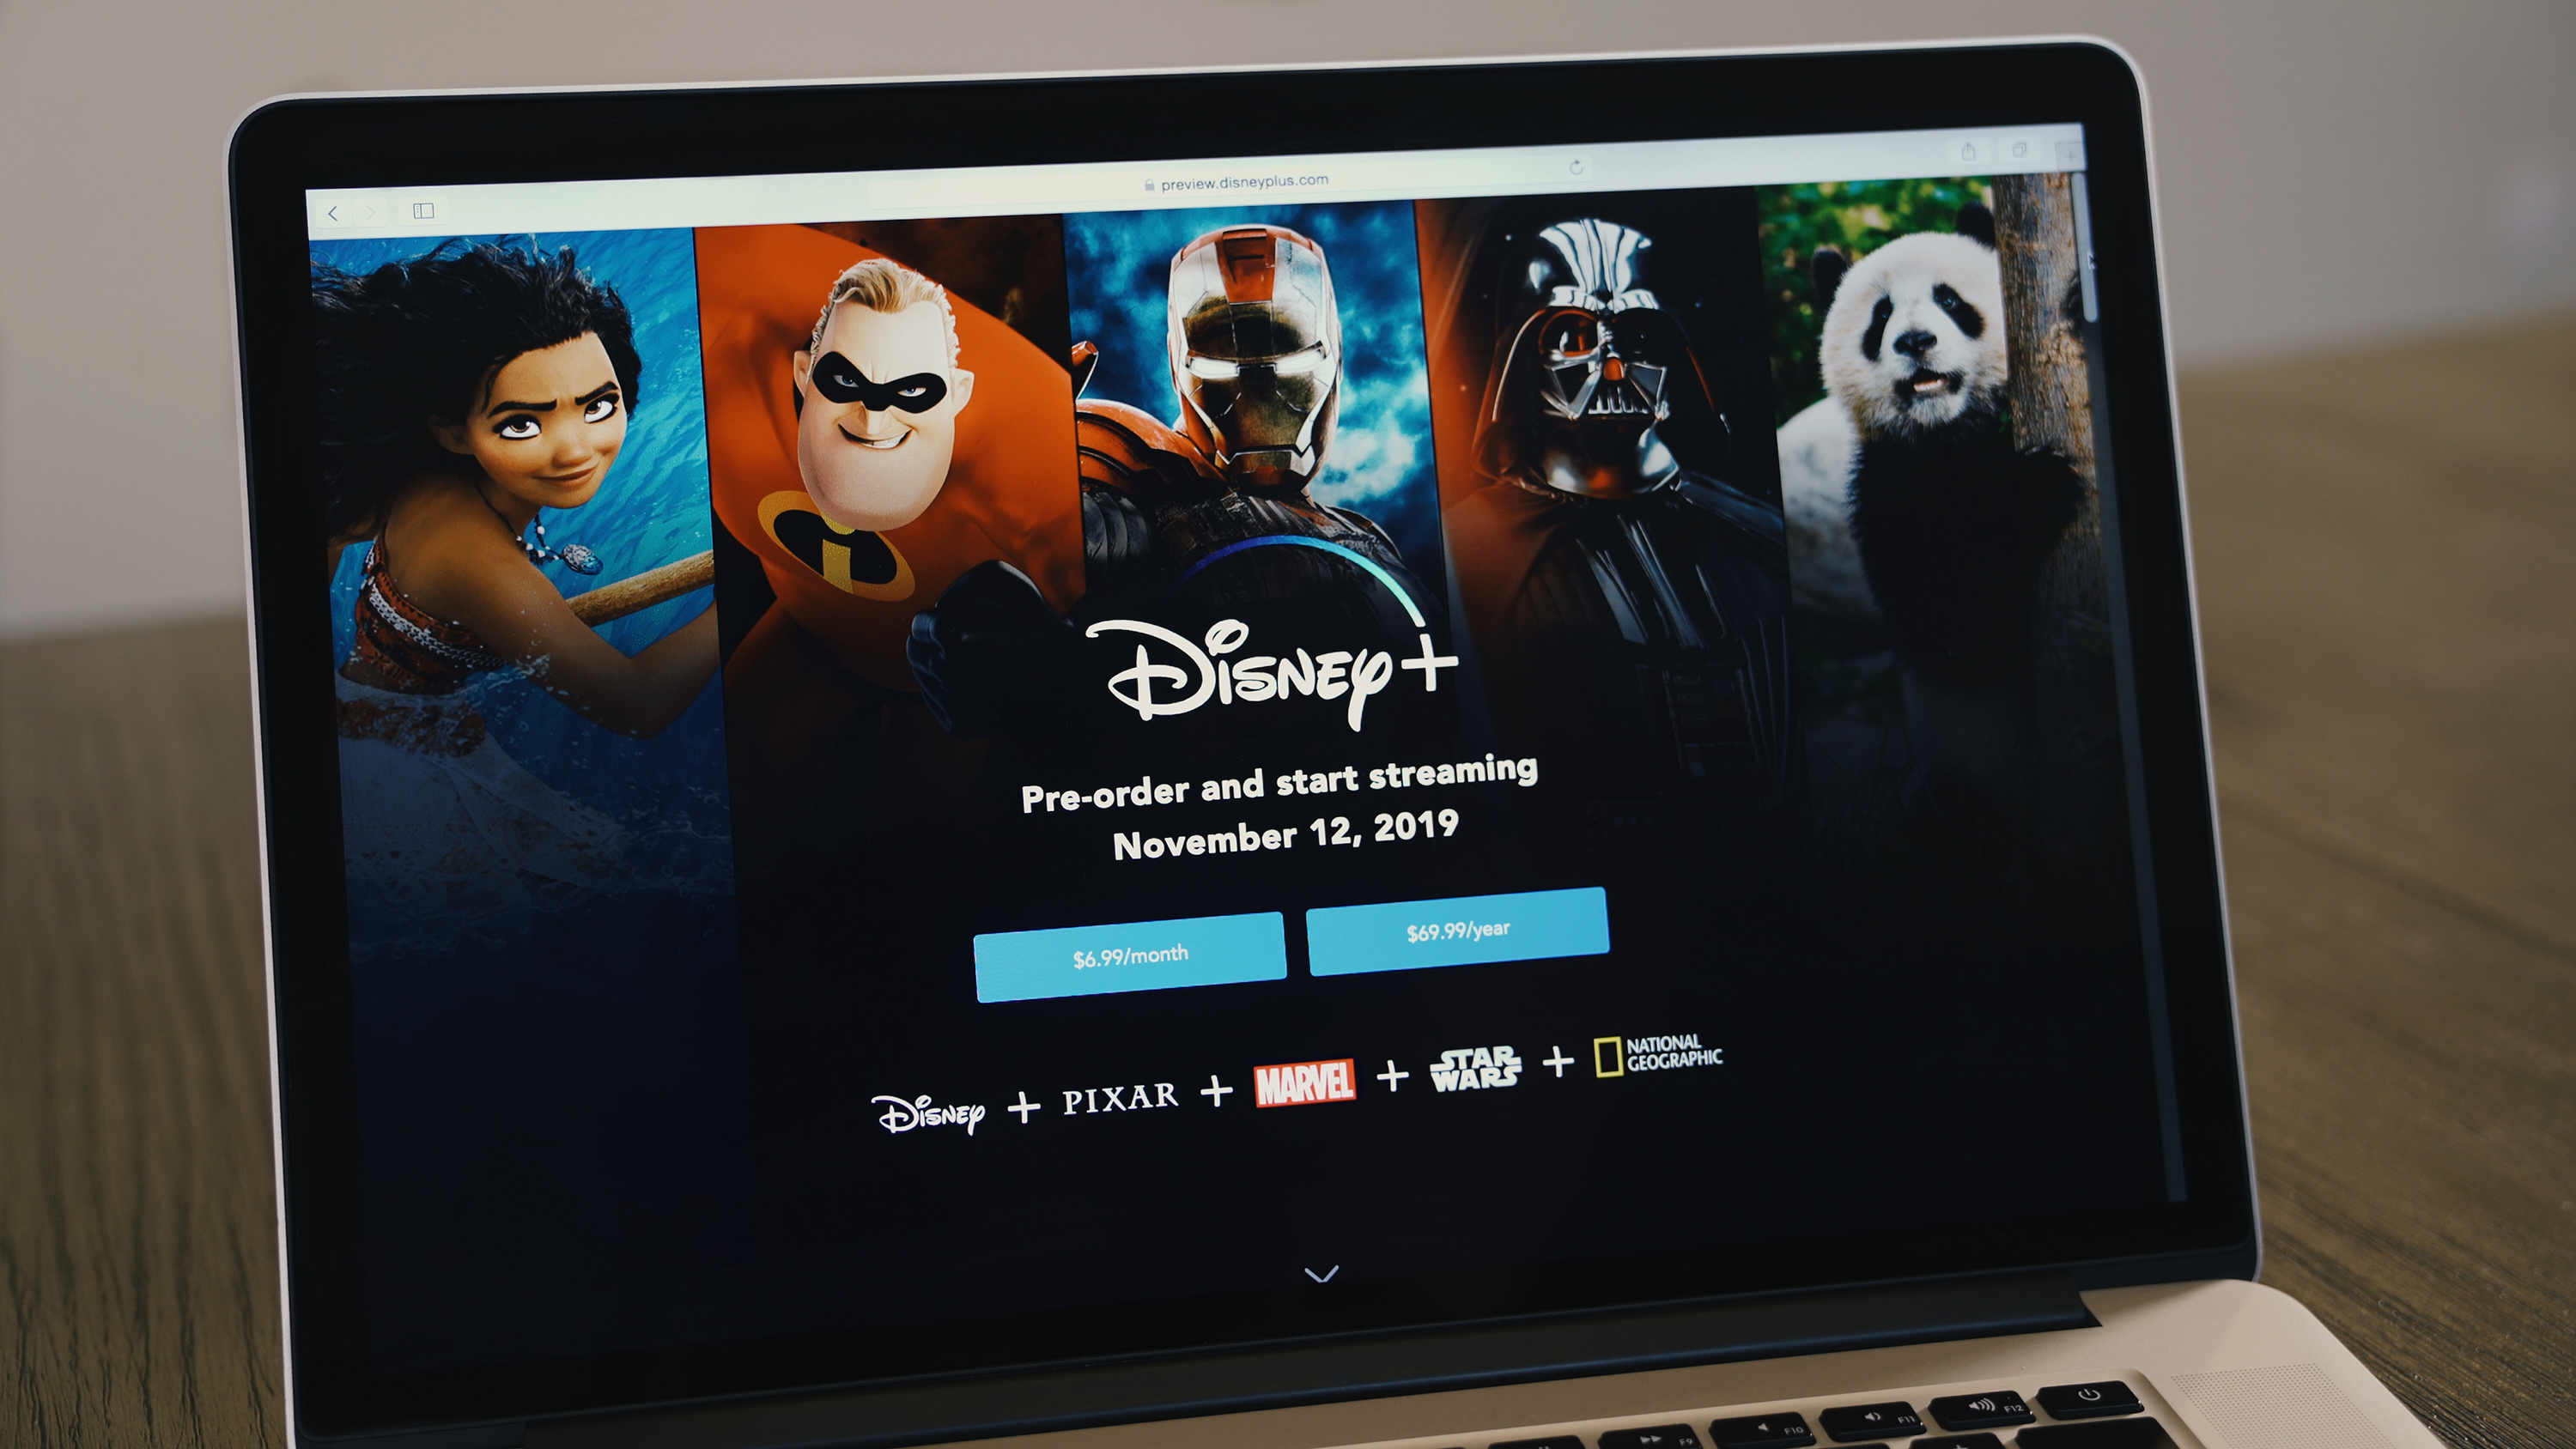 Disney Hack What To Do If You Think Your Account Was Compromised